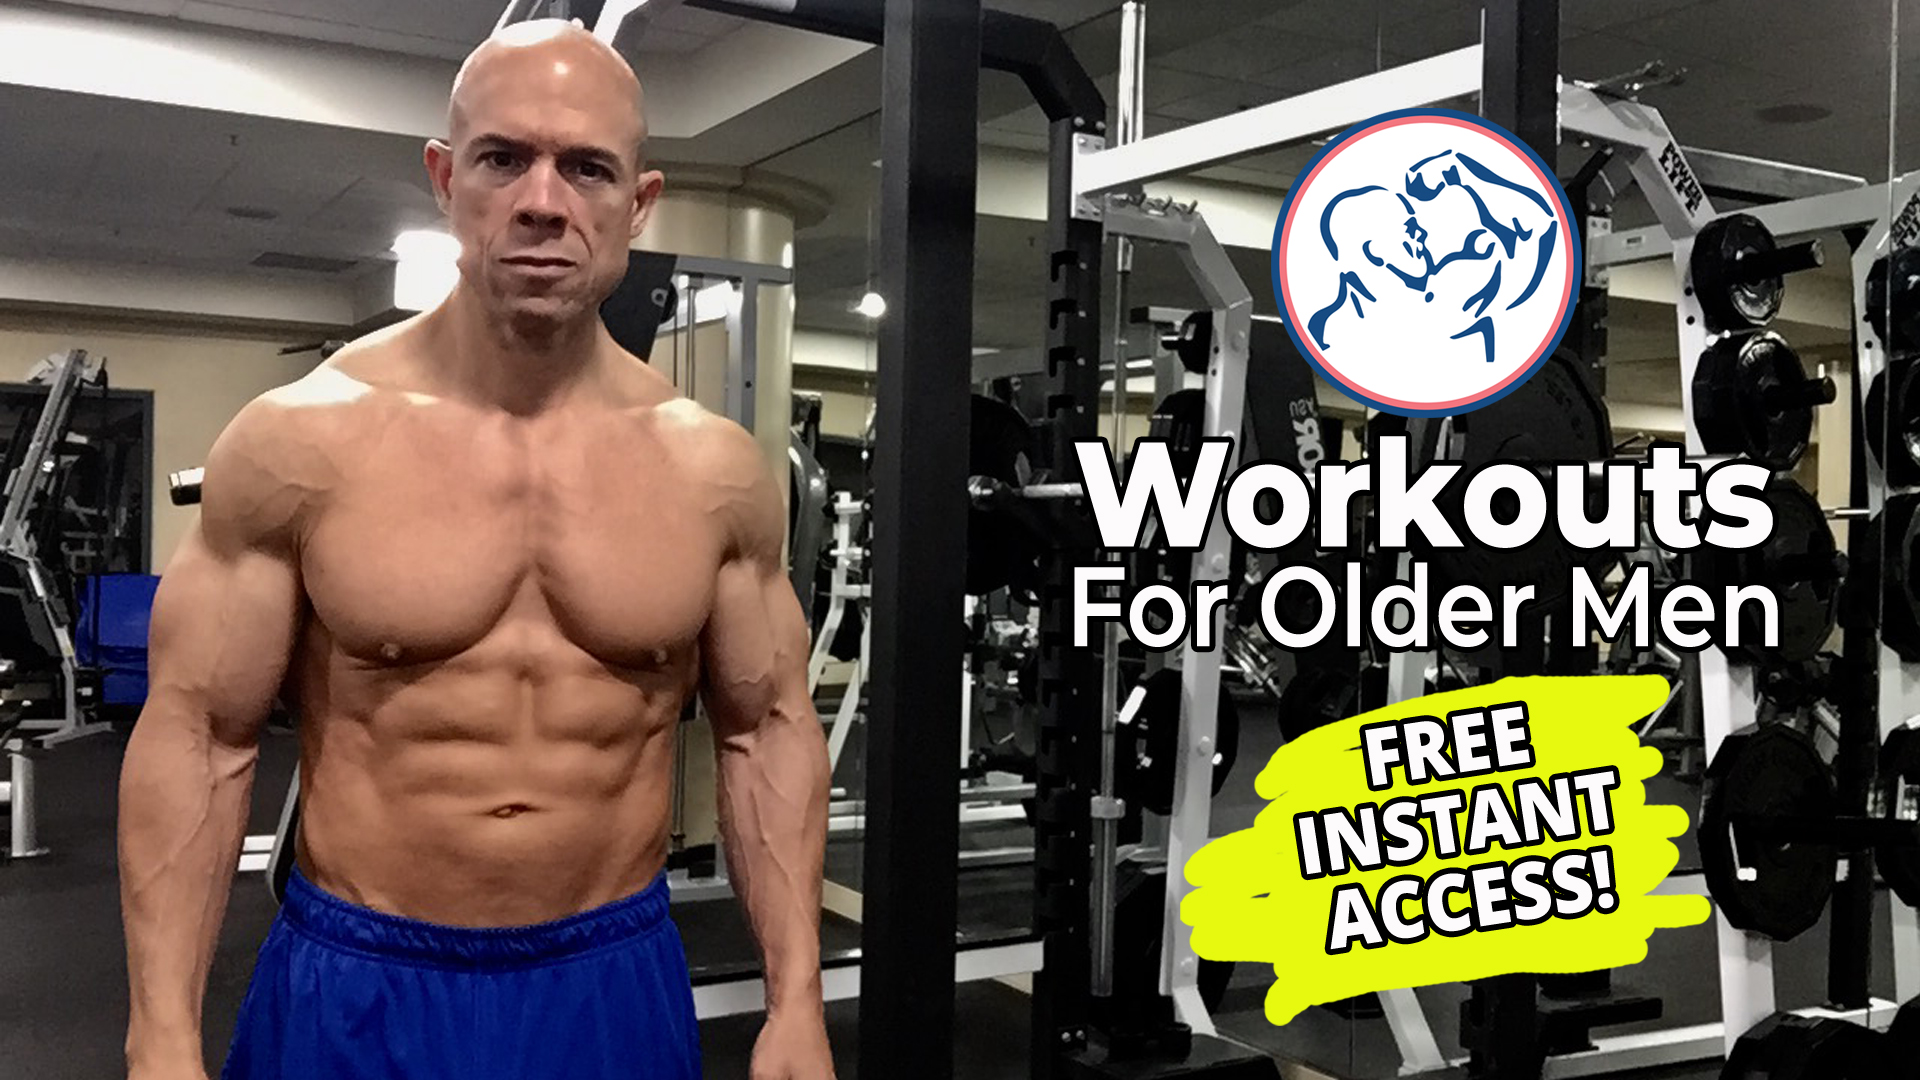 mf workouts for older men flash 2 How Make A Workout Plan